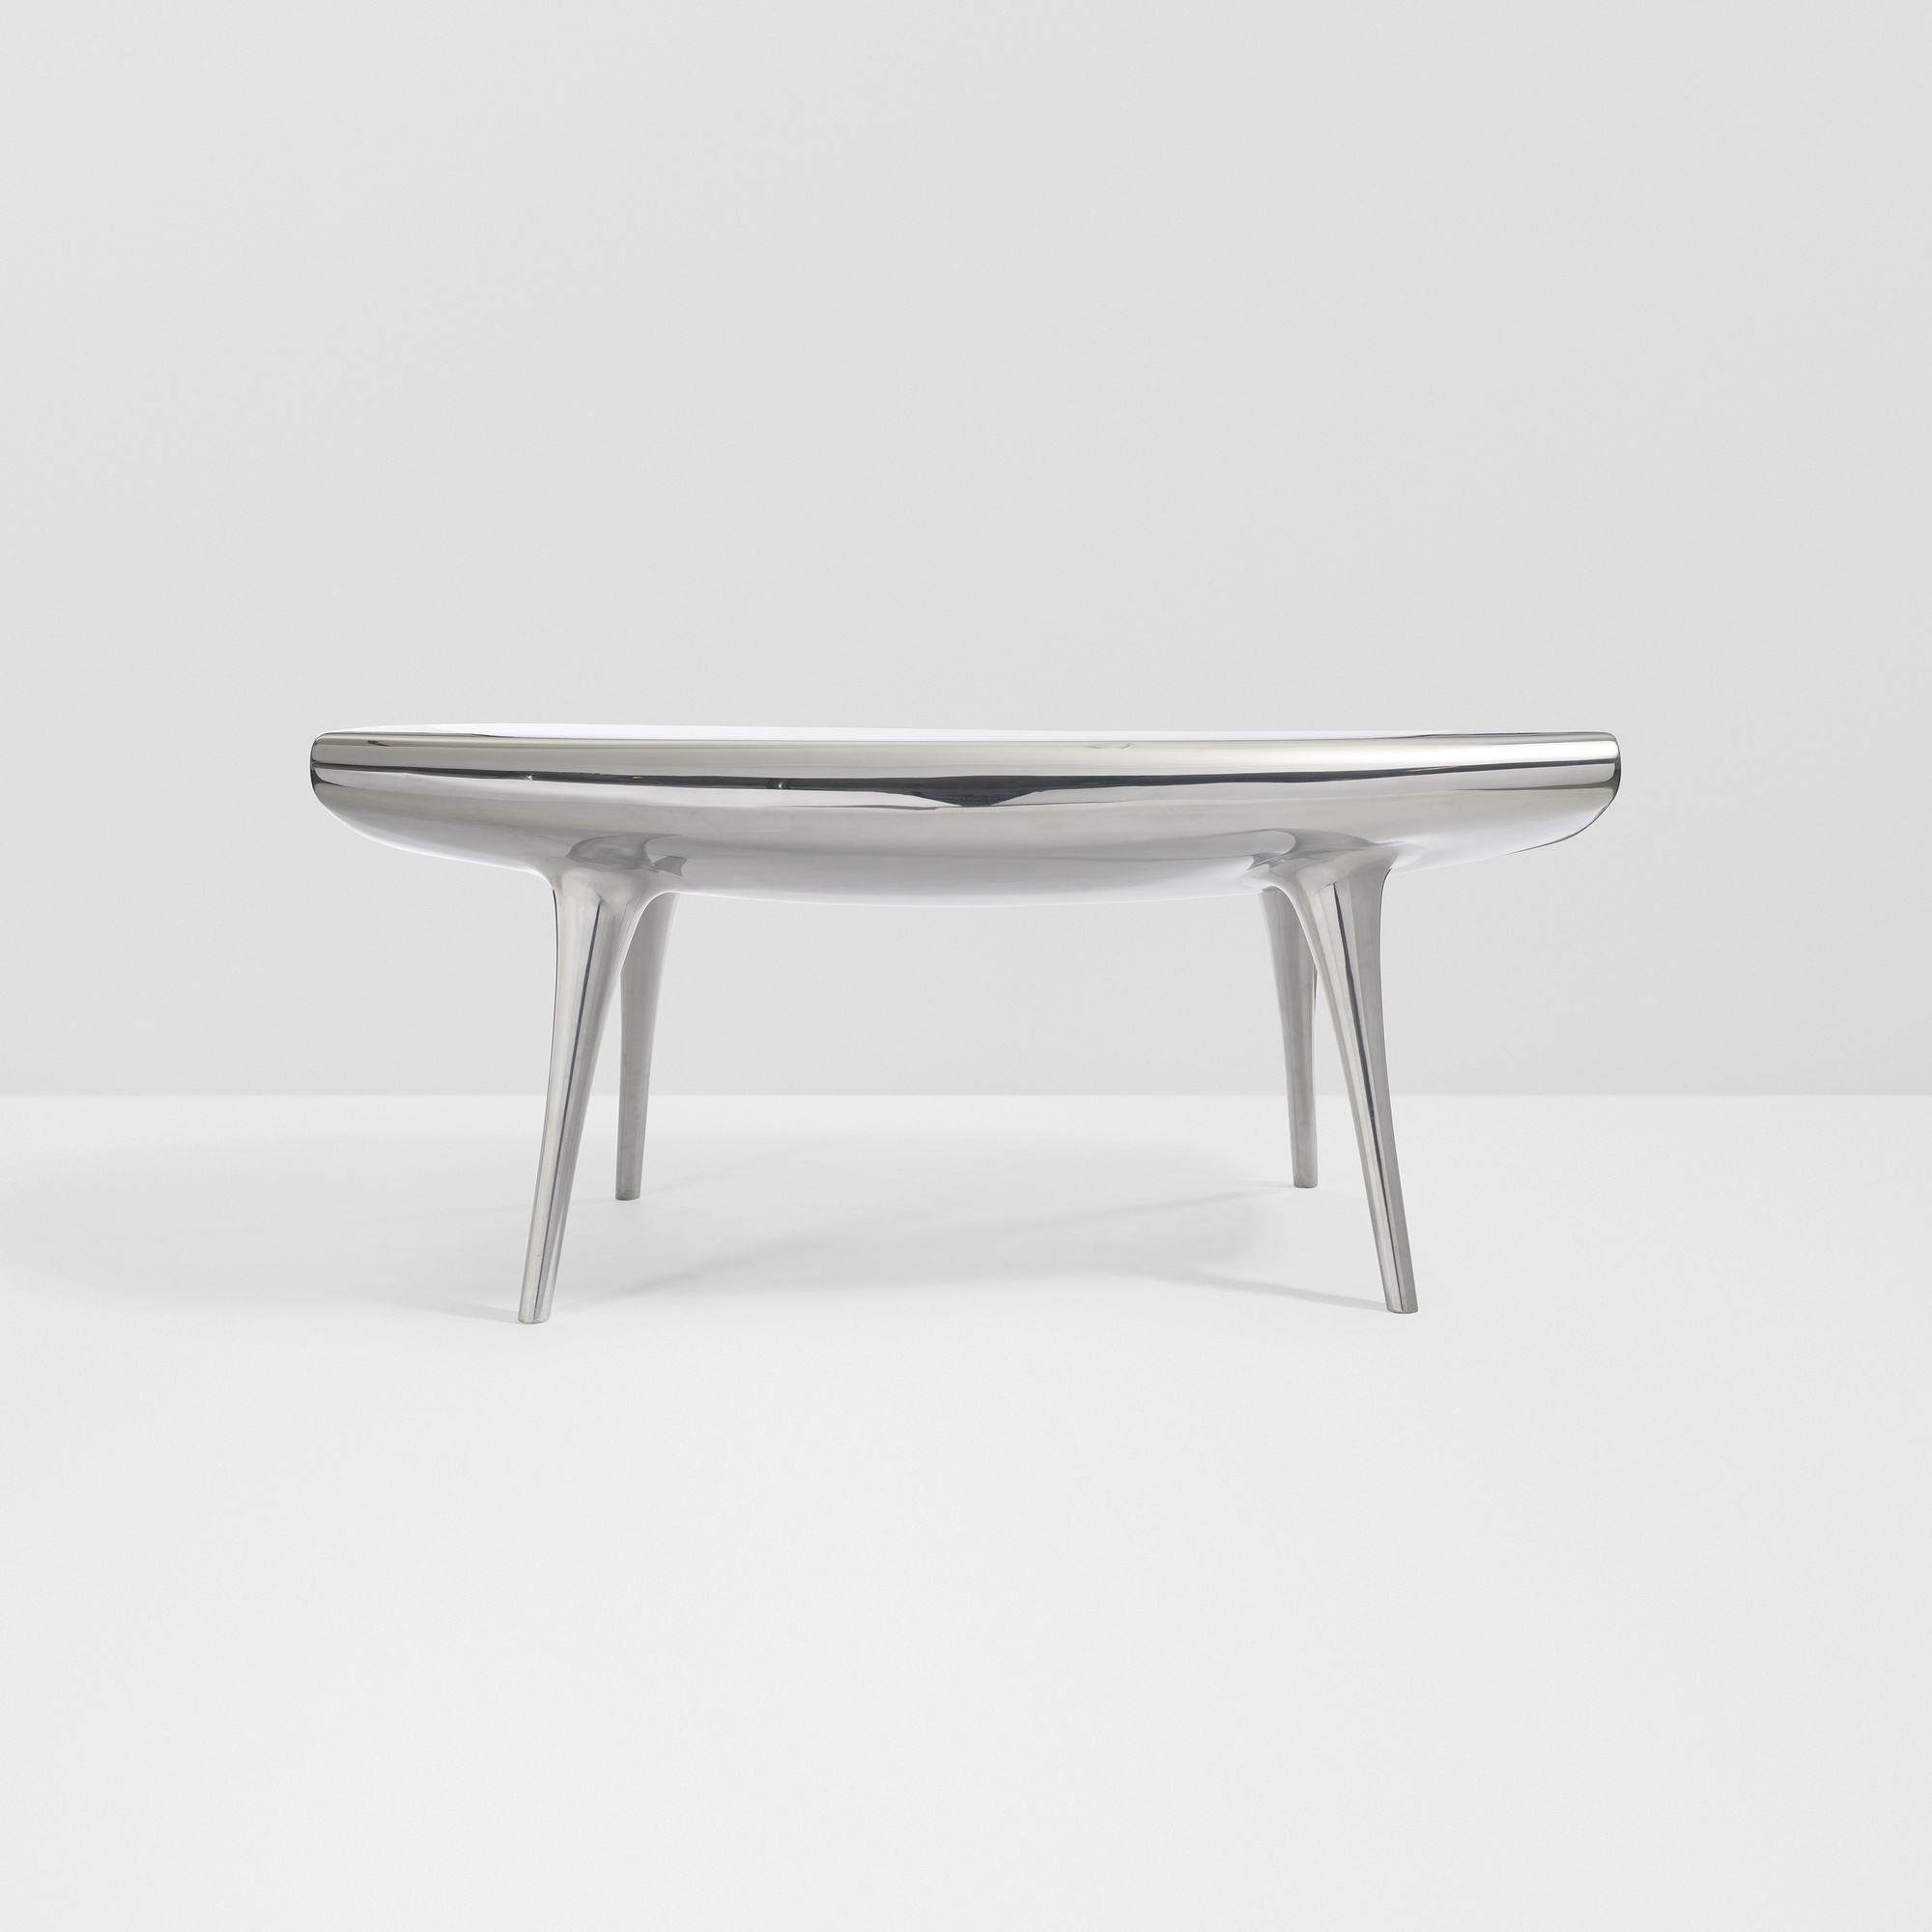 7 marc newson event horizon table for Table design 2015